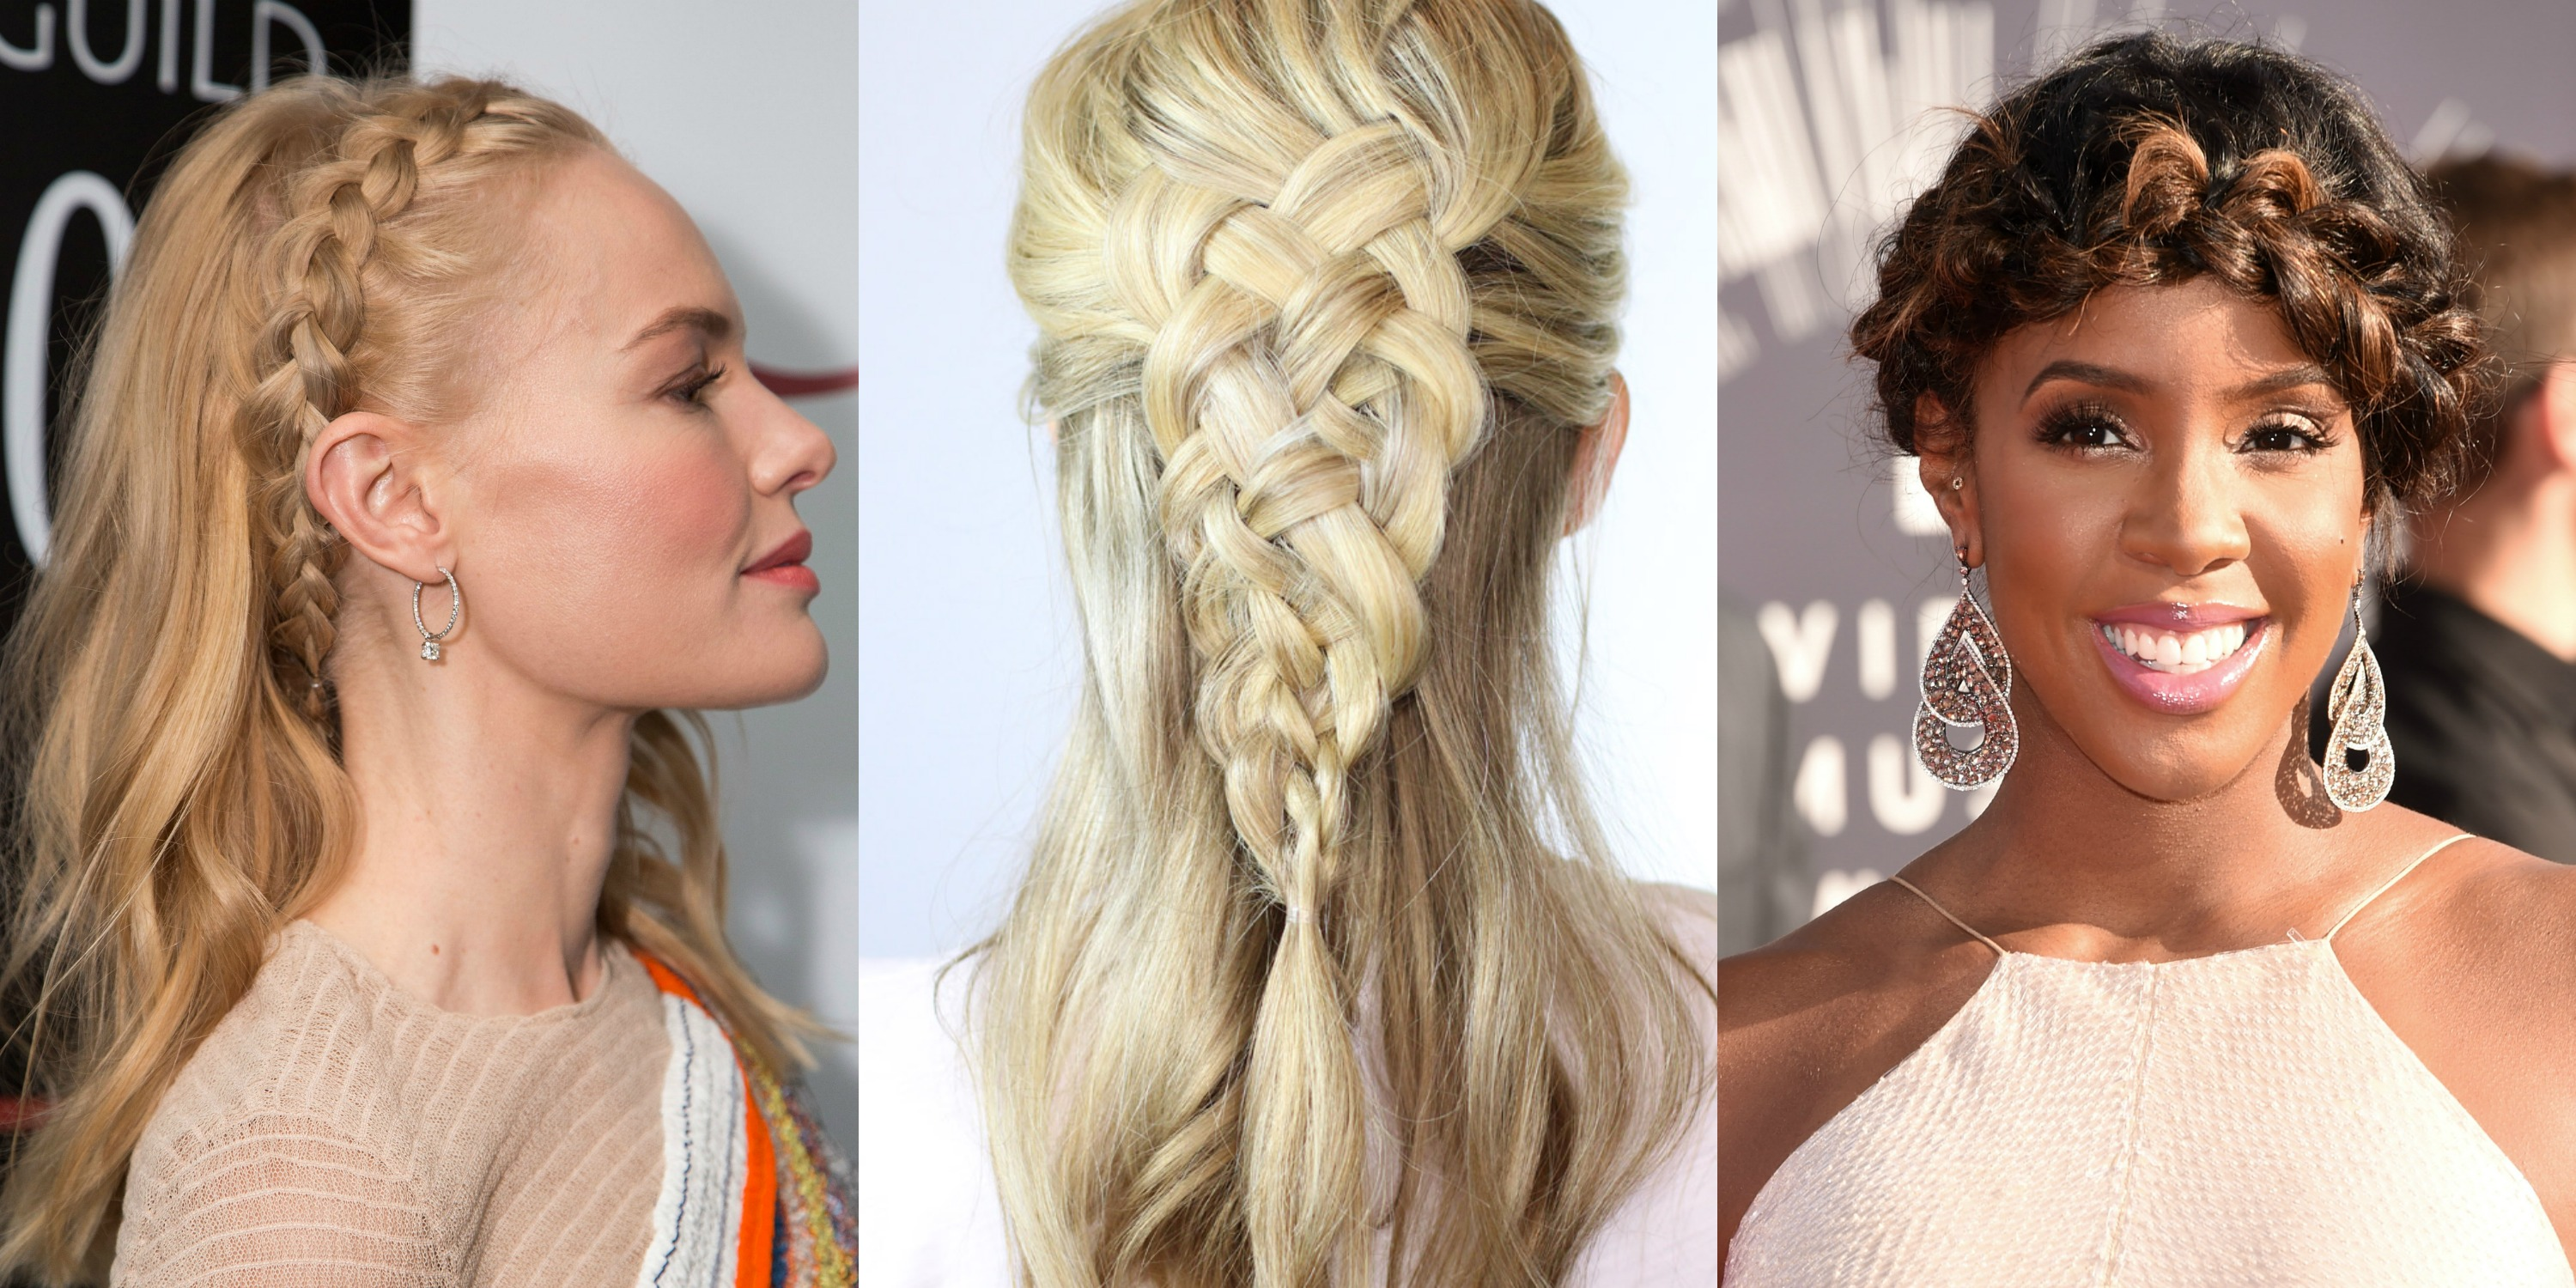 how to style your hair with braids 72 easy braided hairstyles cool braid how to s amp ideas 6803 | 1447281226 types of braids collage